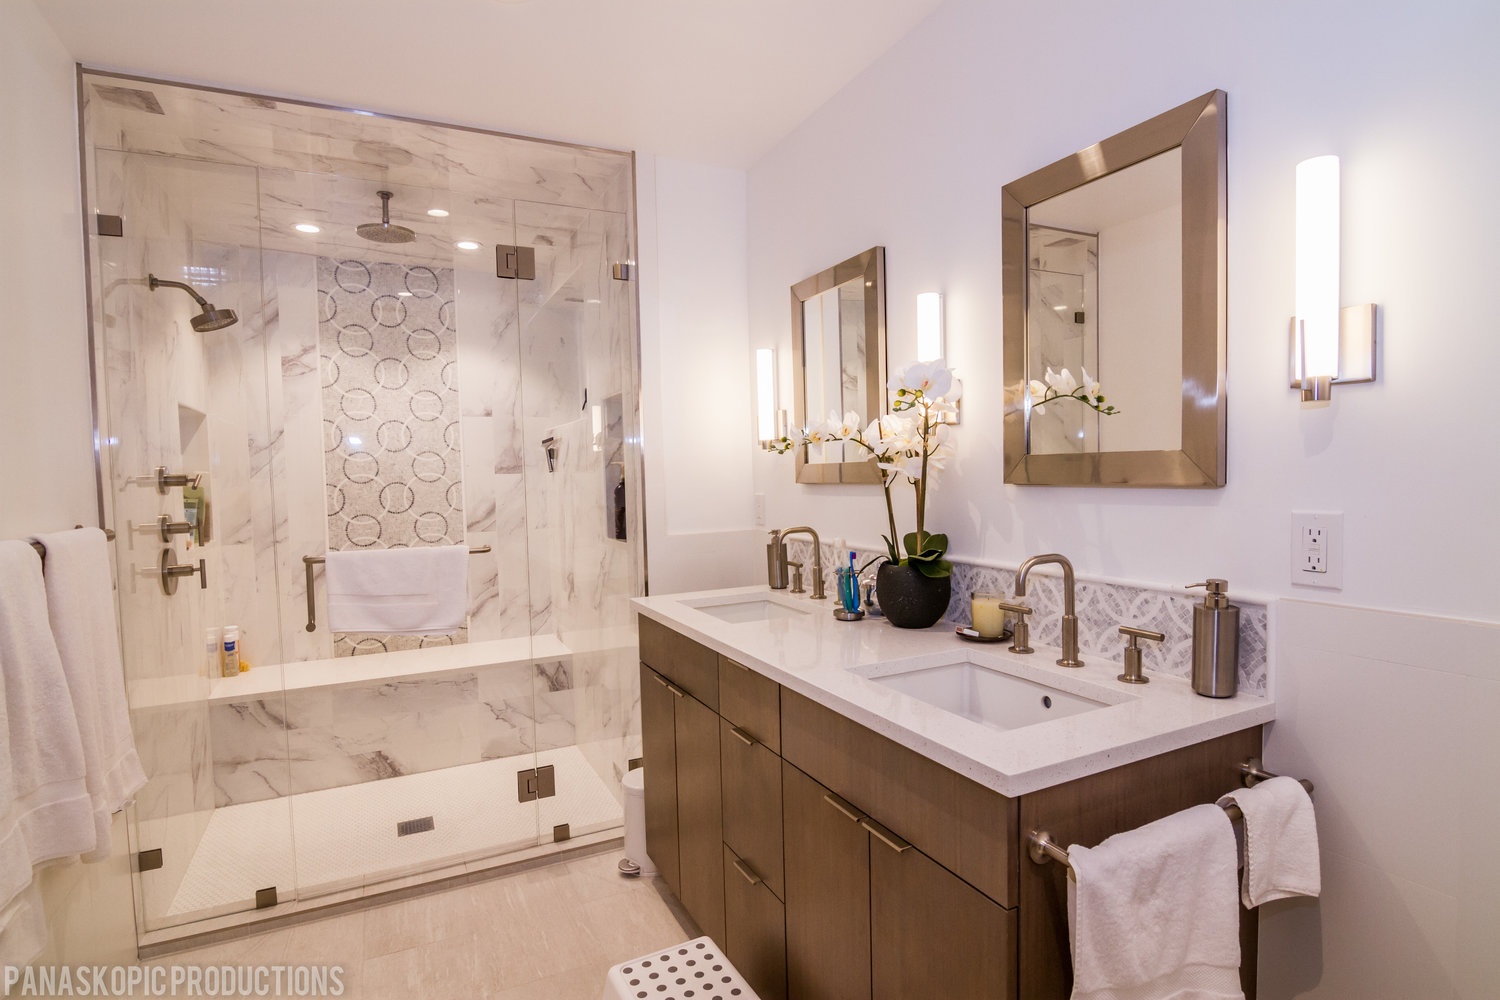 Best Bathroom Remodel Contractors In San Francisco Badeloft USA - Bathroom remodel san francisco